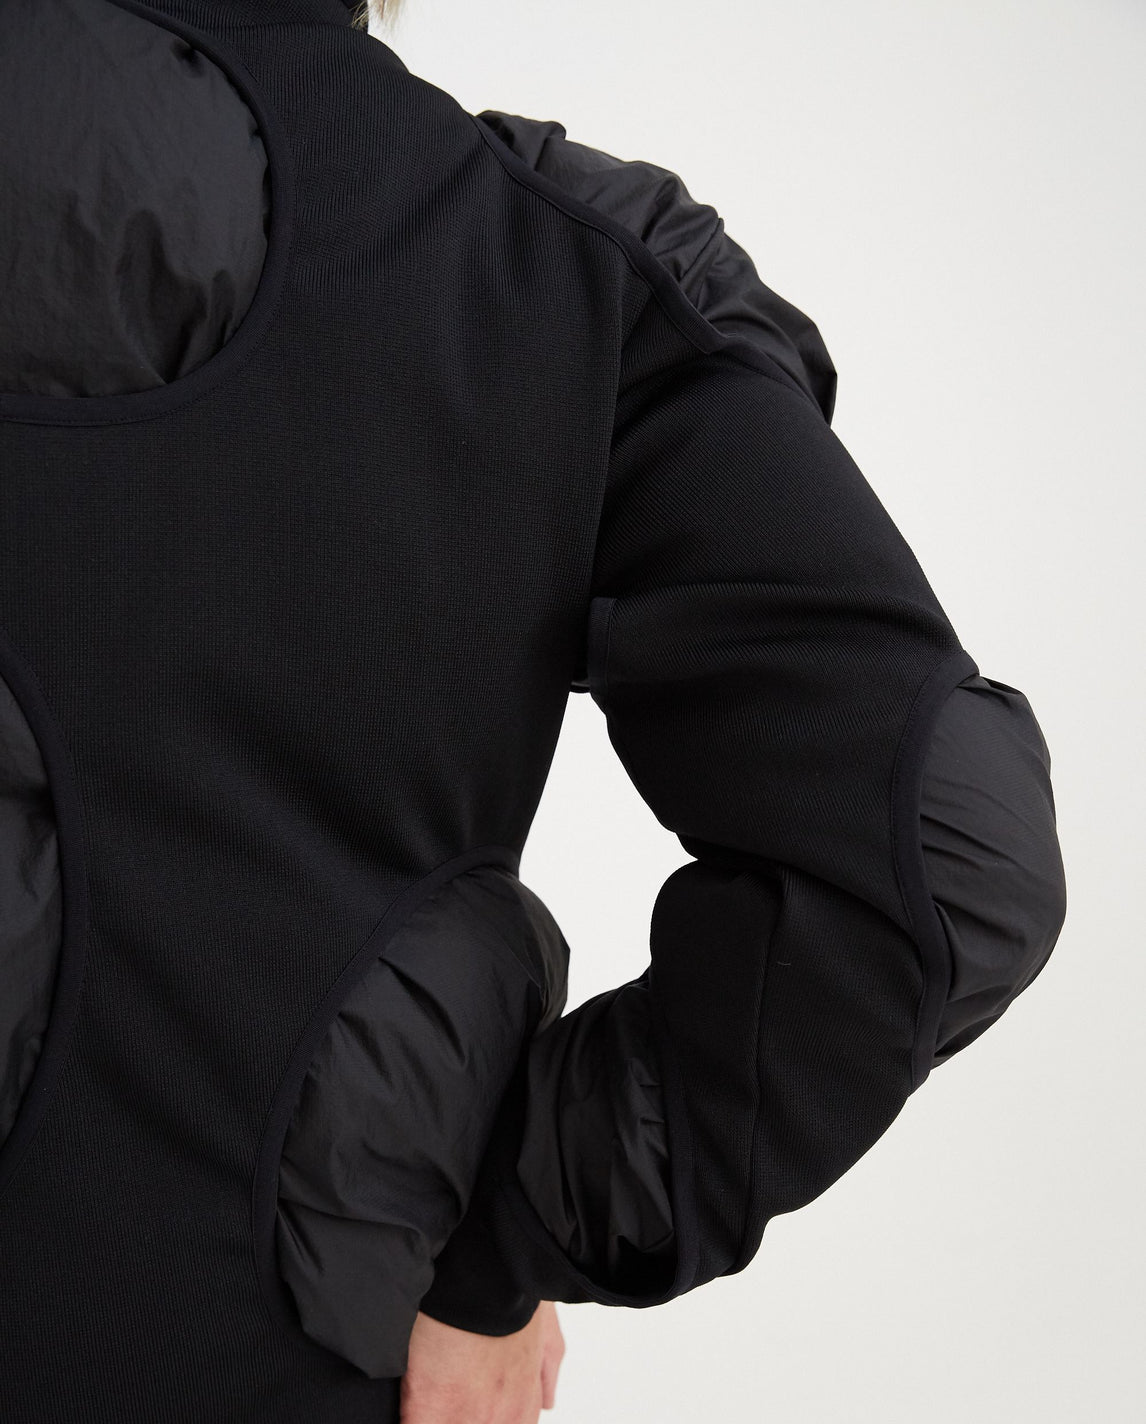 3.1 Down Left Jacket - Black MENS POST ARCHIVE FACTION